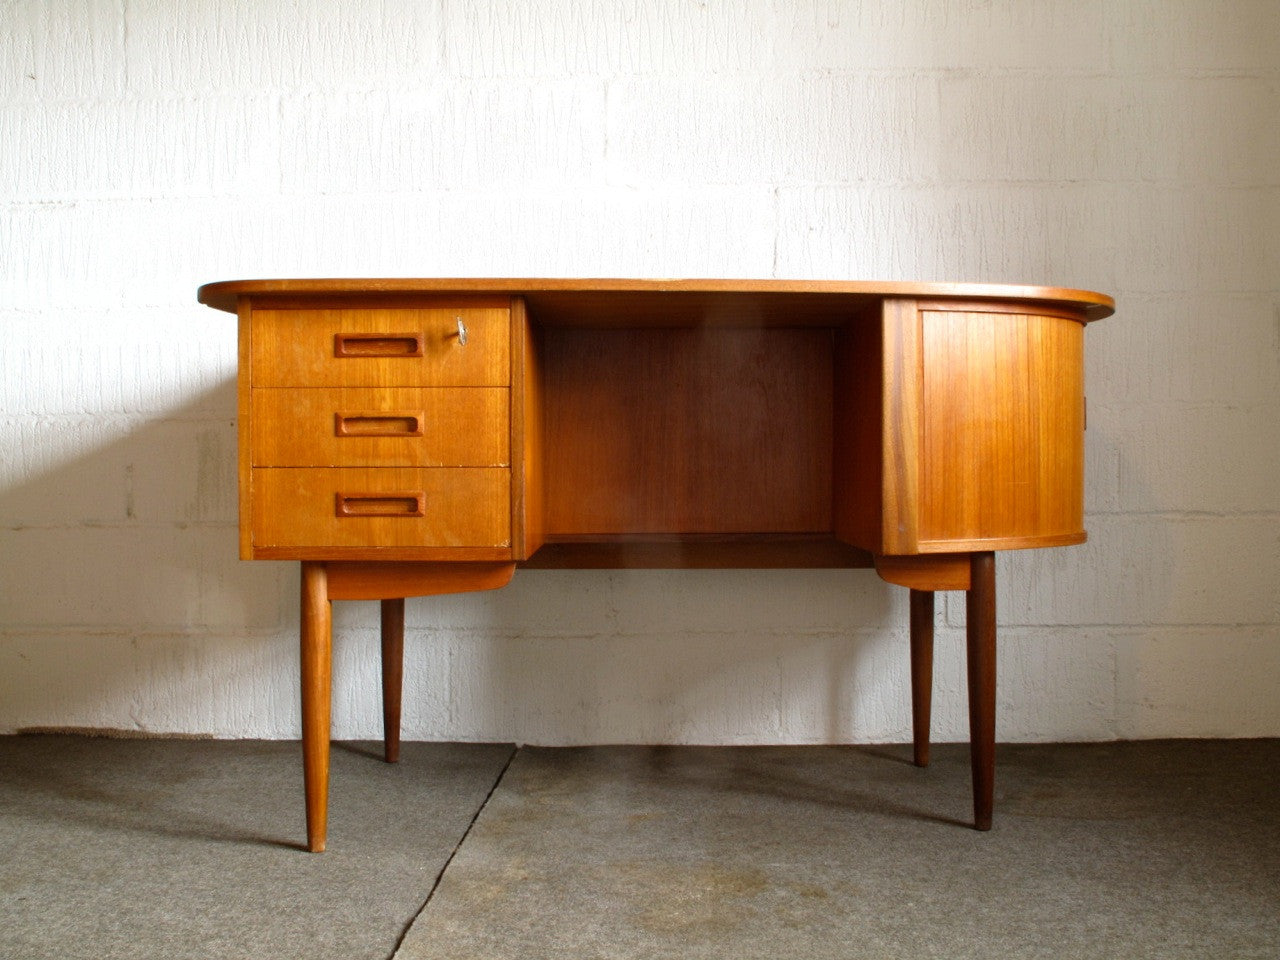 Teak desk with oblong surface